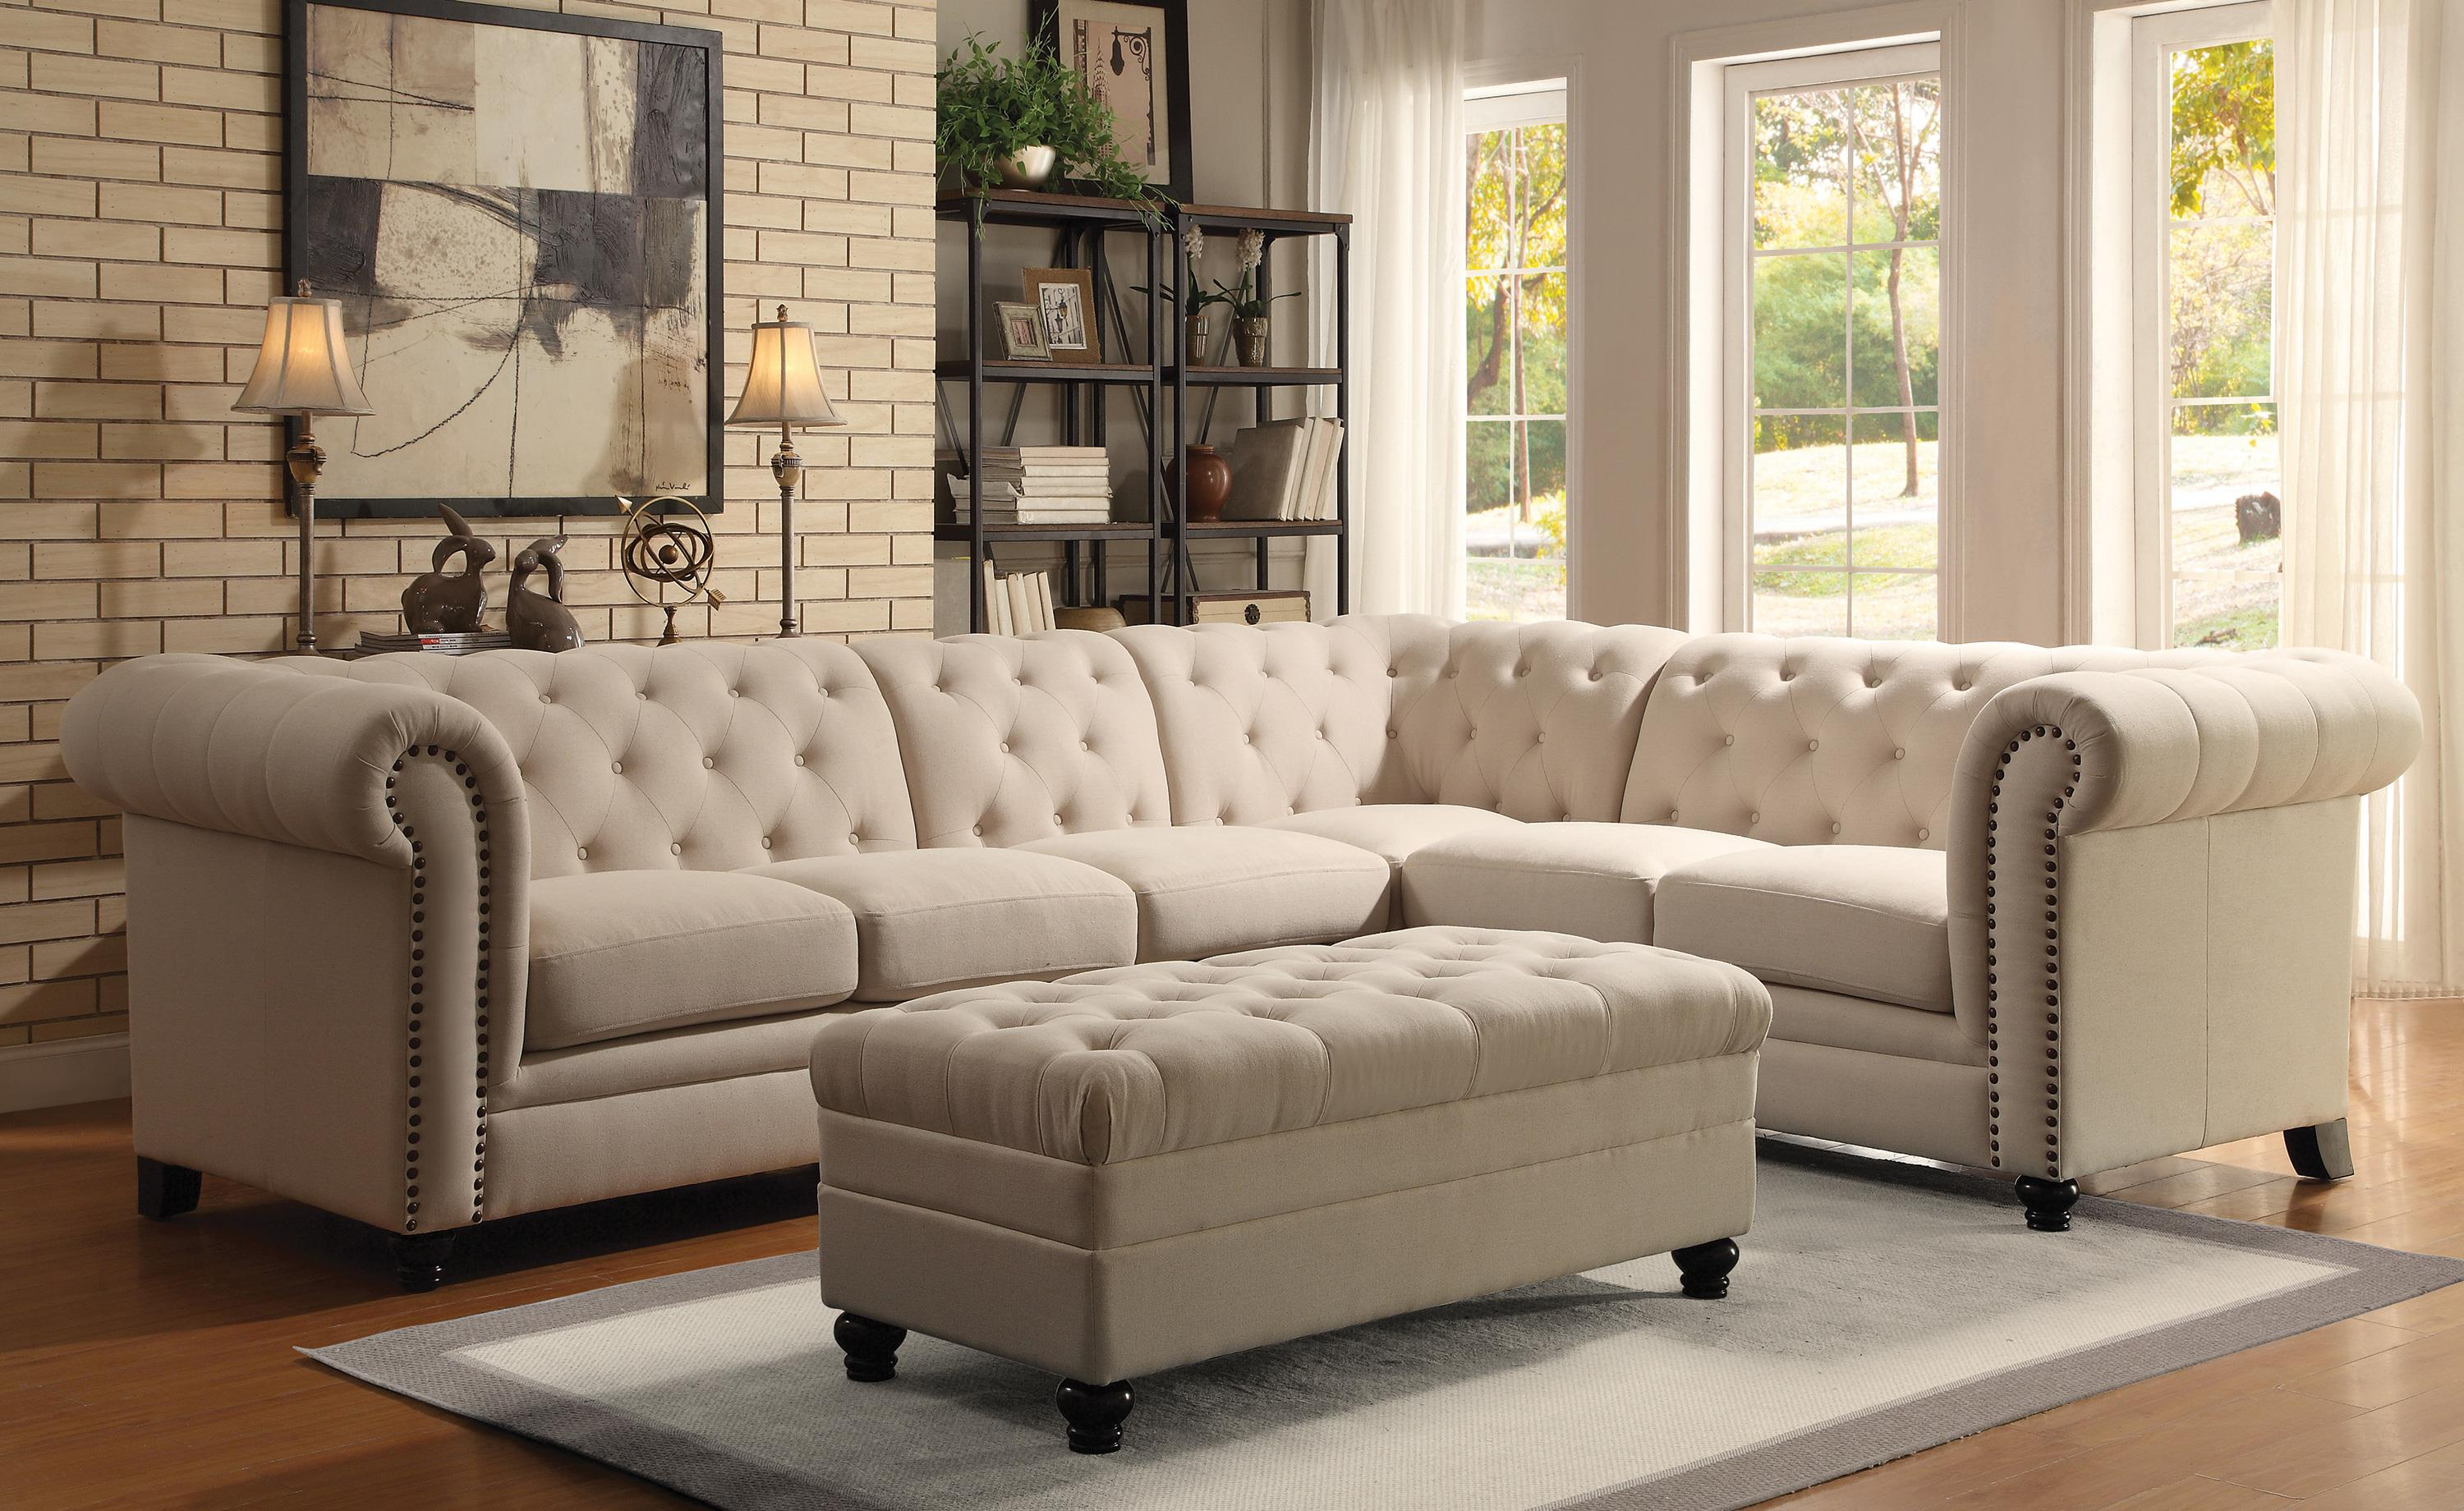 Button tufted sectional sofa with armless chair by coaster for Tufted couch set